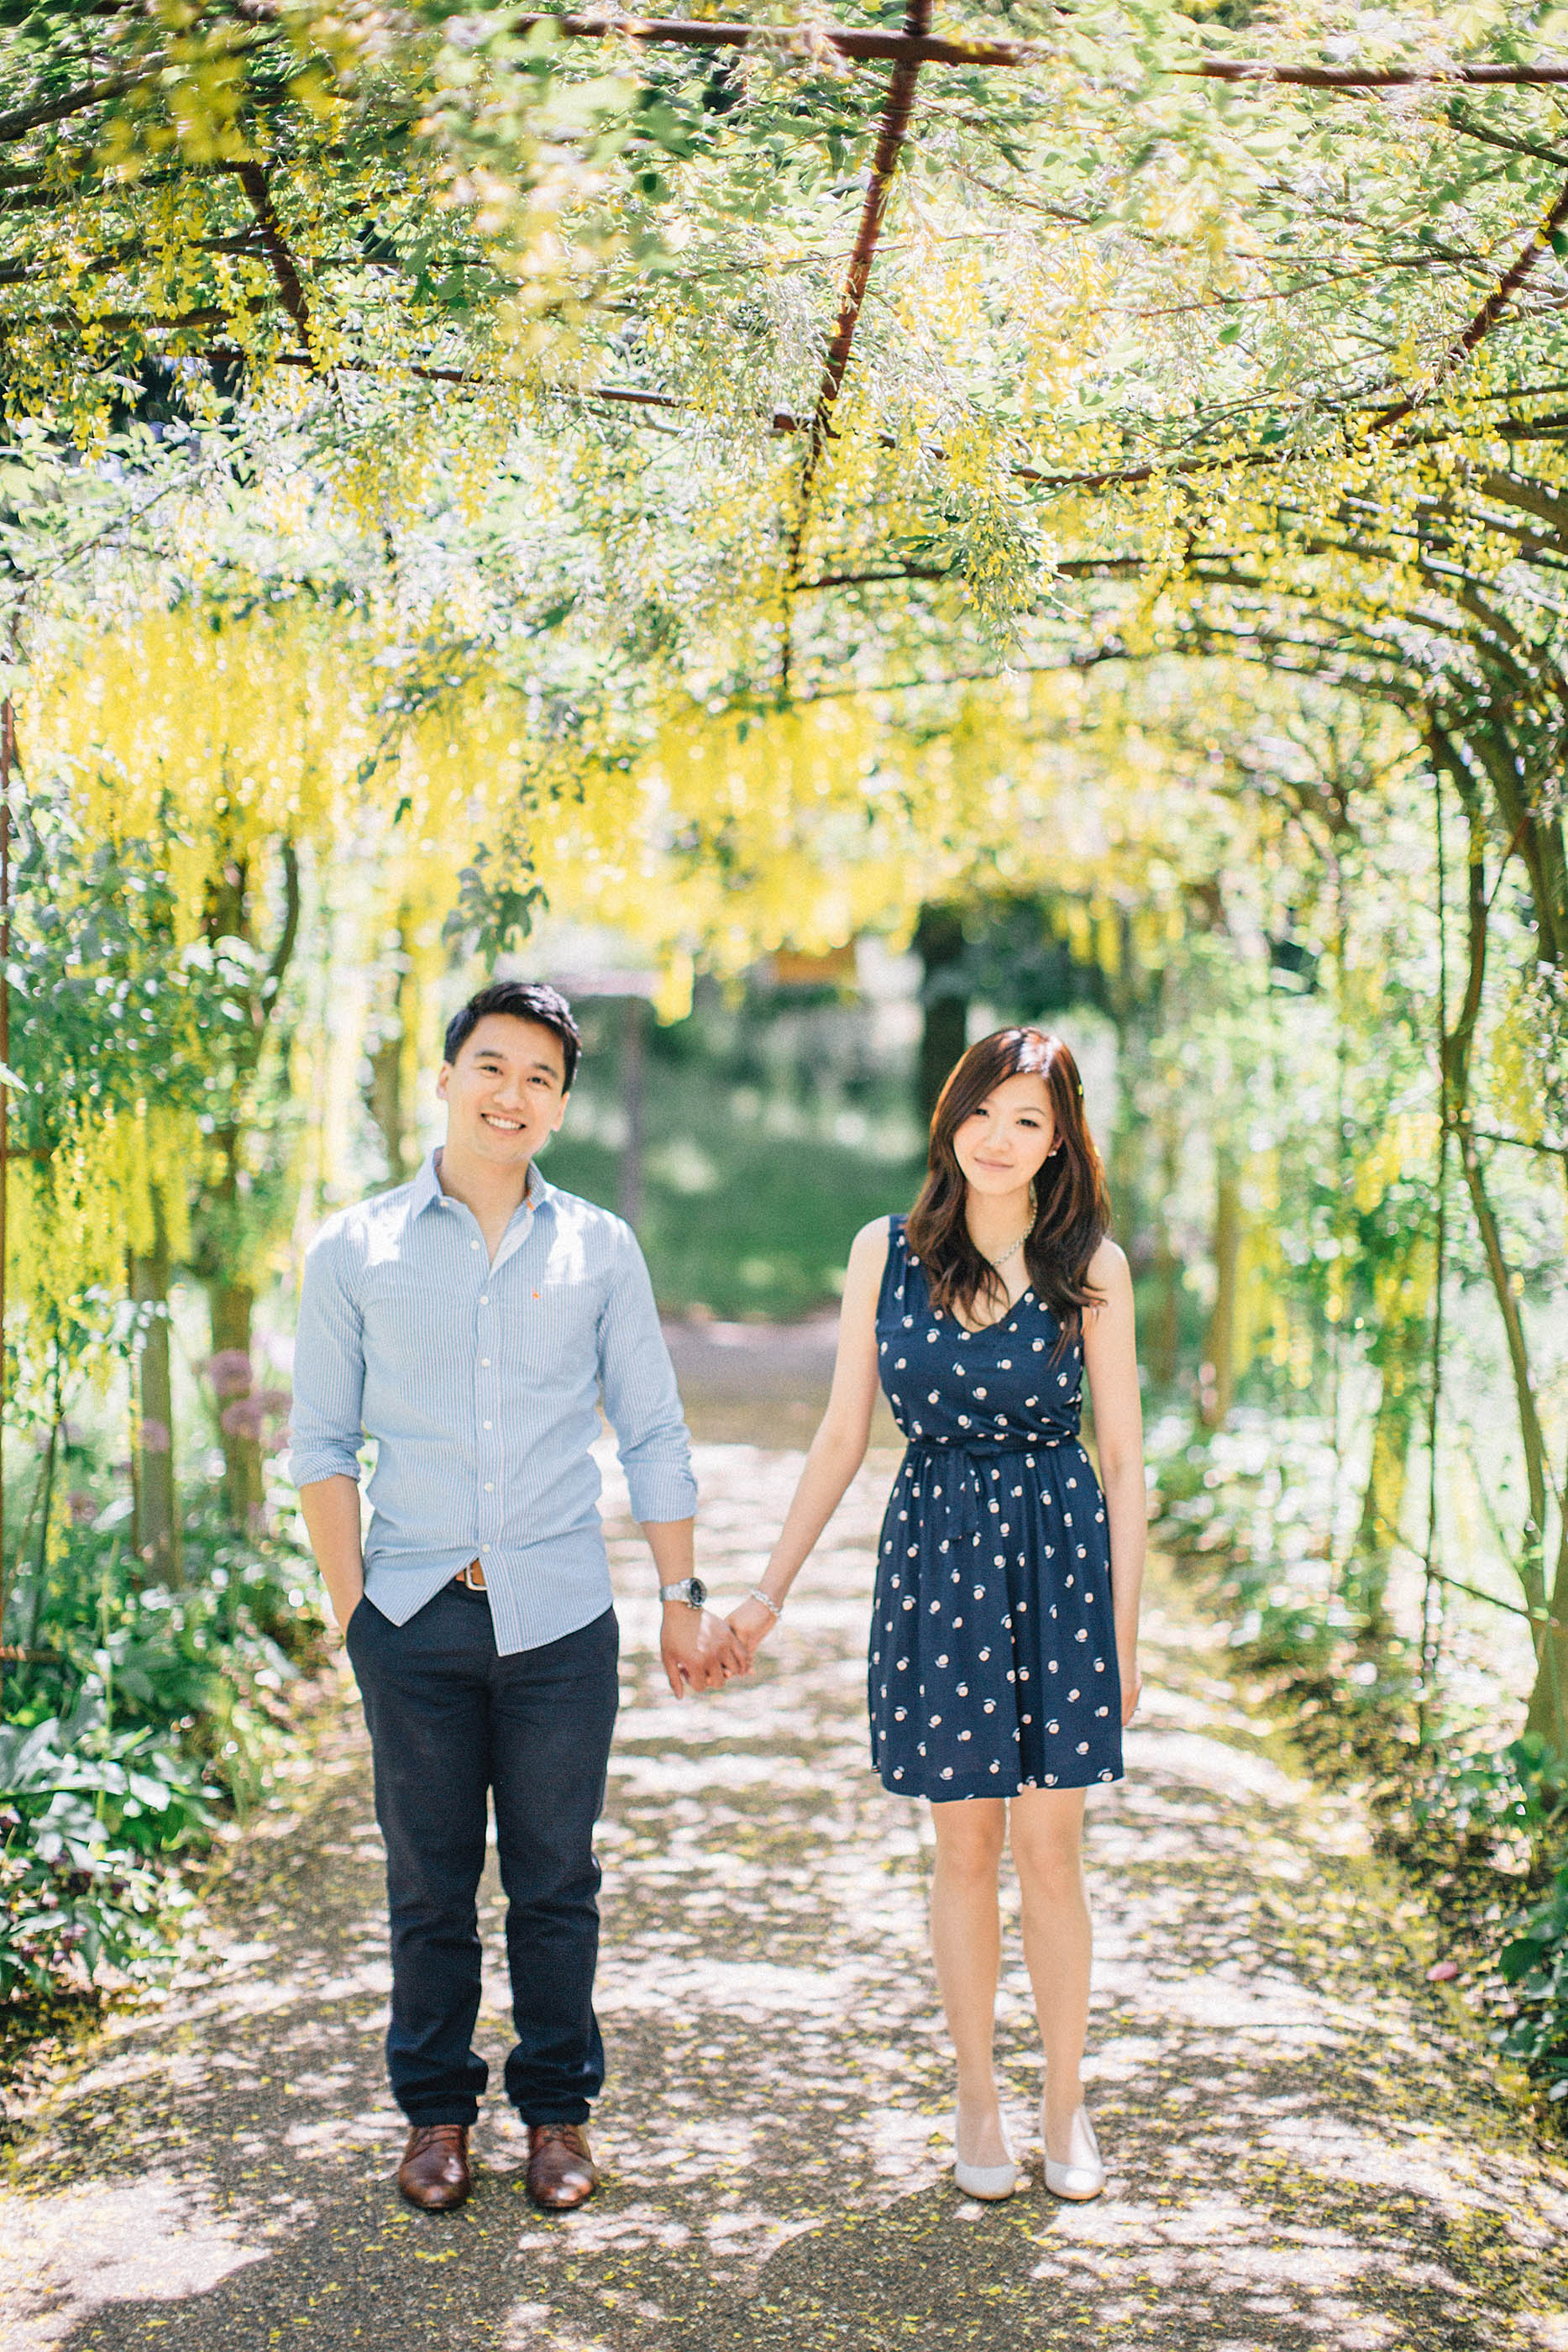 5 Things You Should Know About Dating Chinese Women